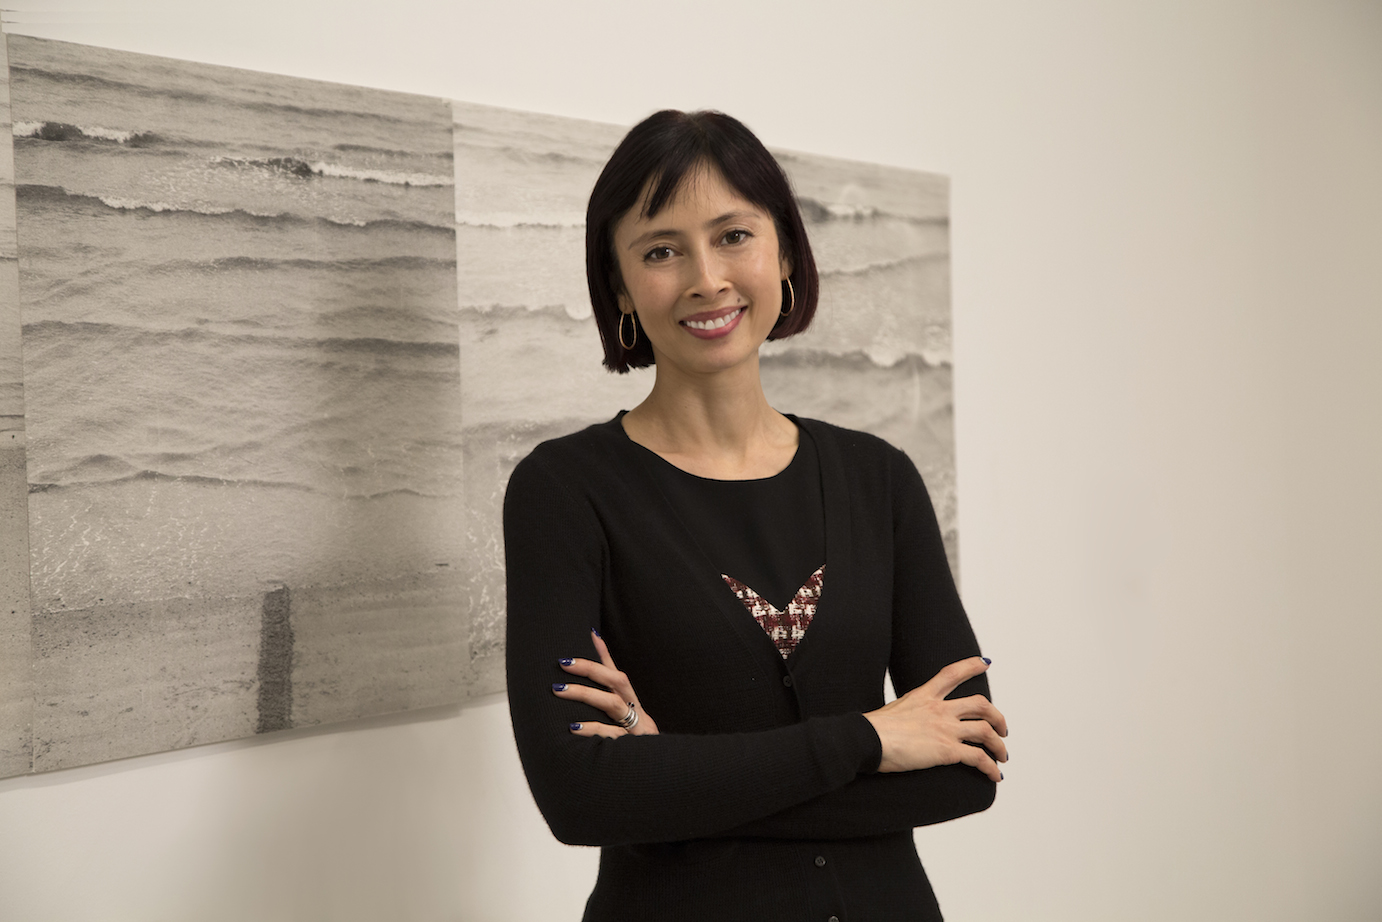 Melissa Chiu, Director of Hirshhorn Musuem (Photo by Cathy Carver, Courtesy of Smithsonian Institution)